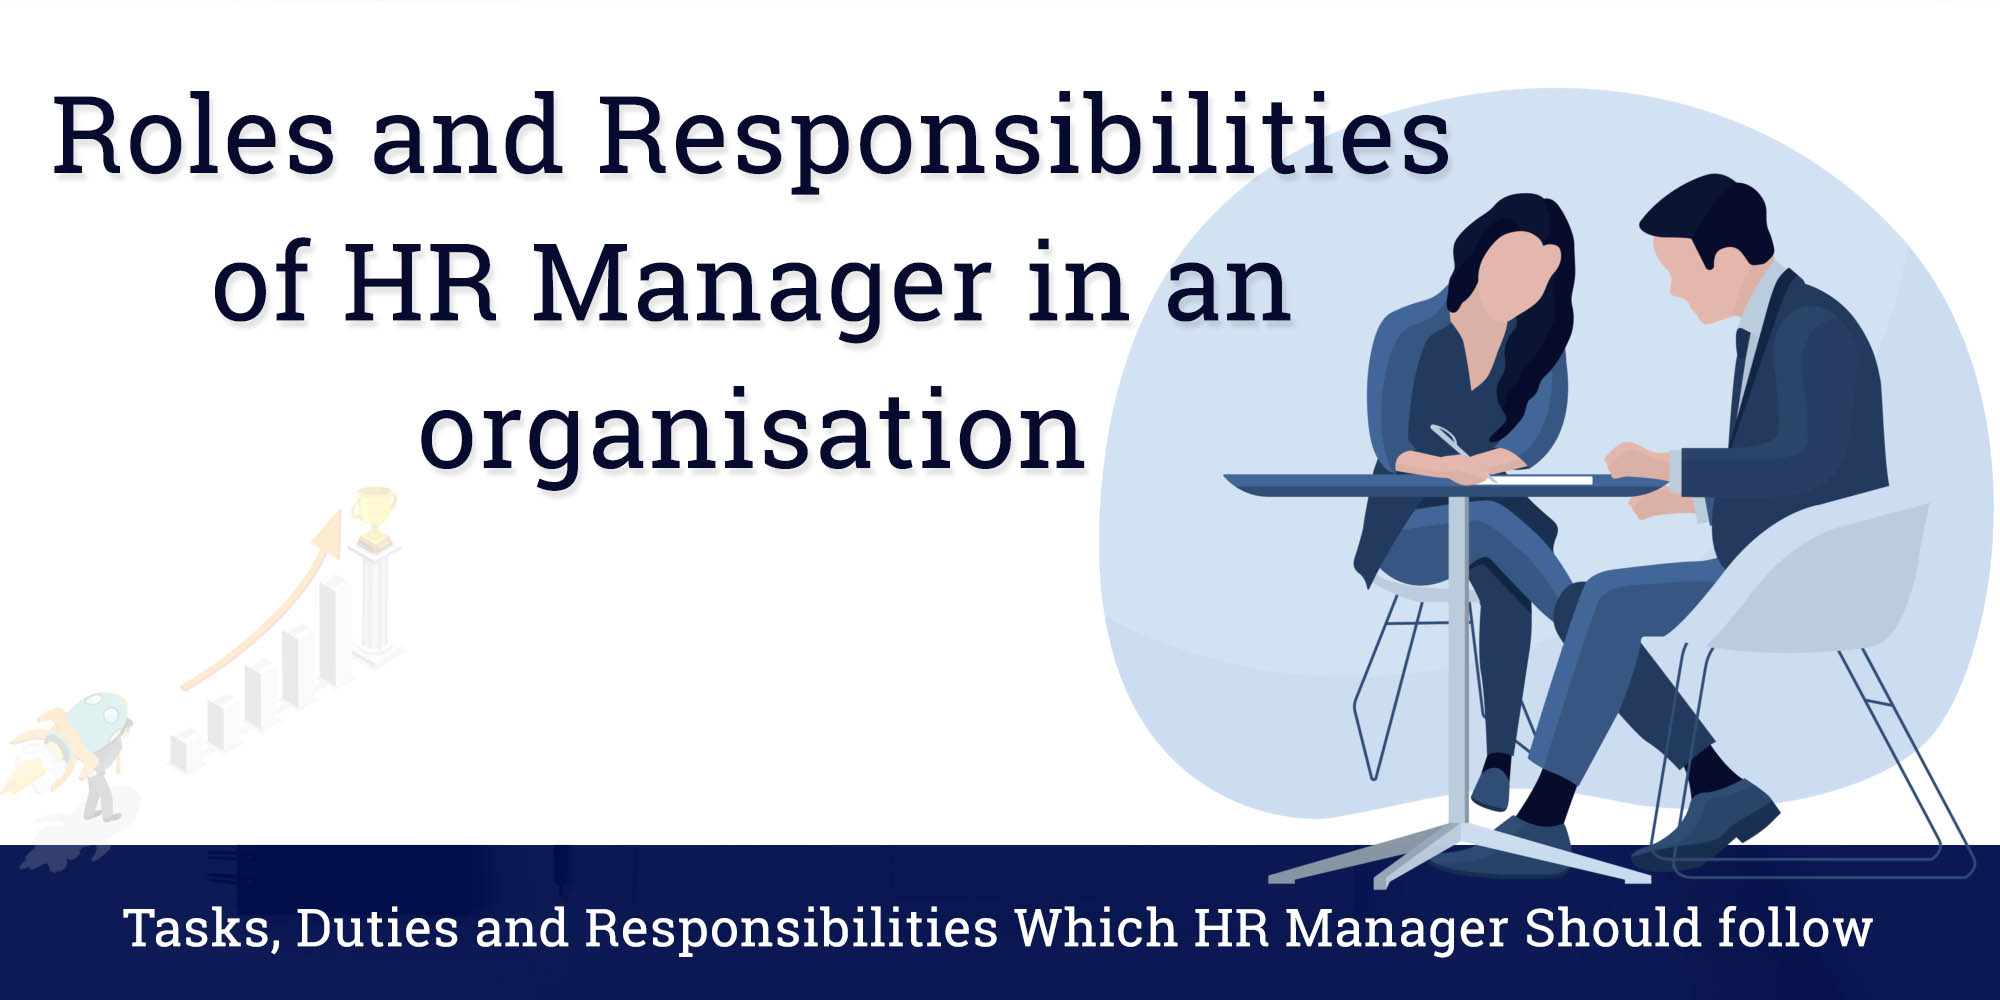 Roles and Responsibilities of HR Manager